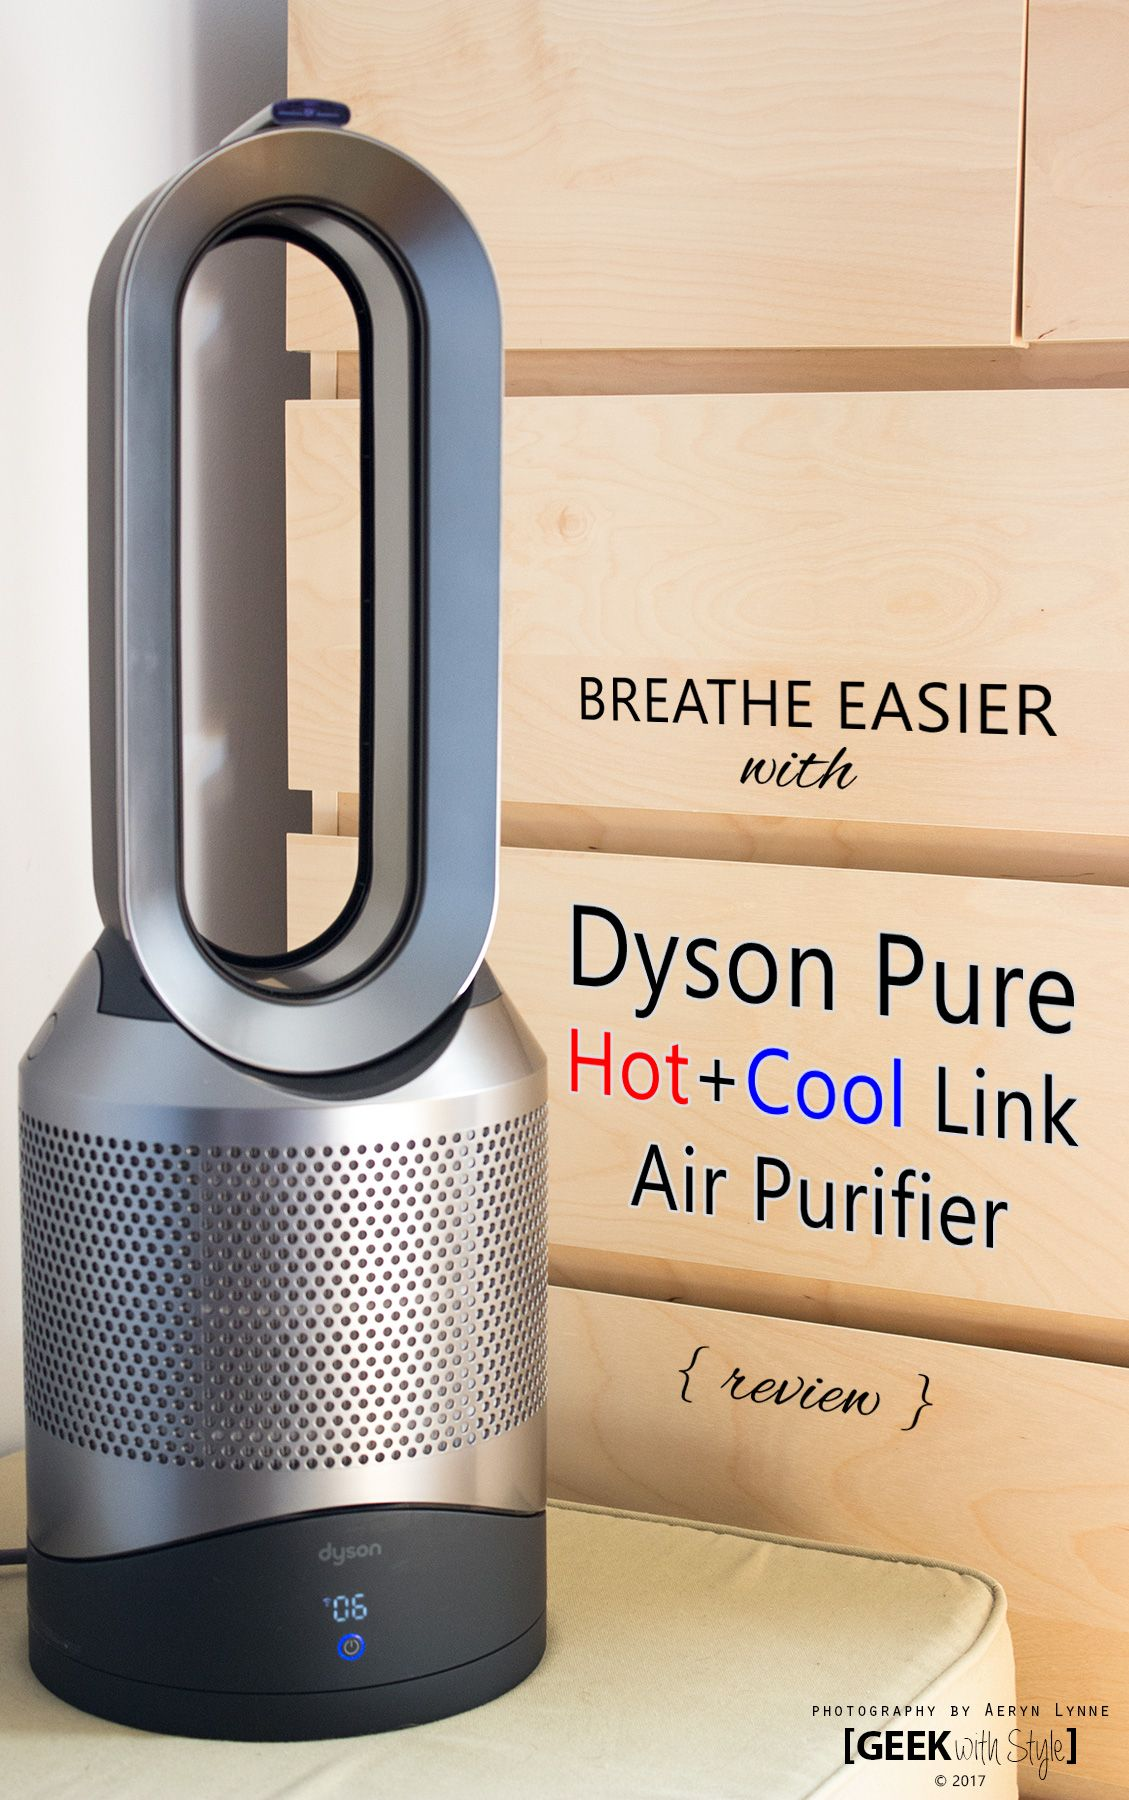 Breathing City Air, and How the Dyson Pure Hot+Cool Link